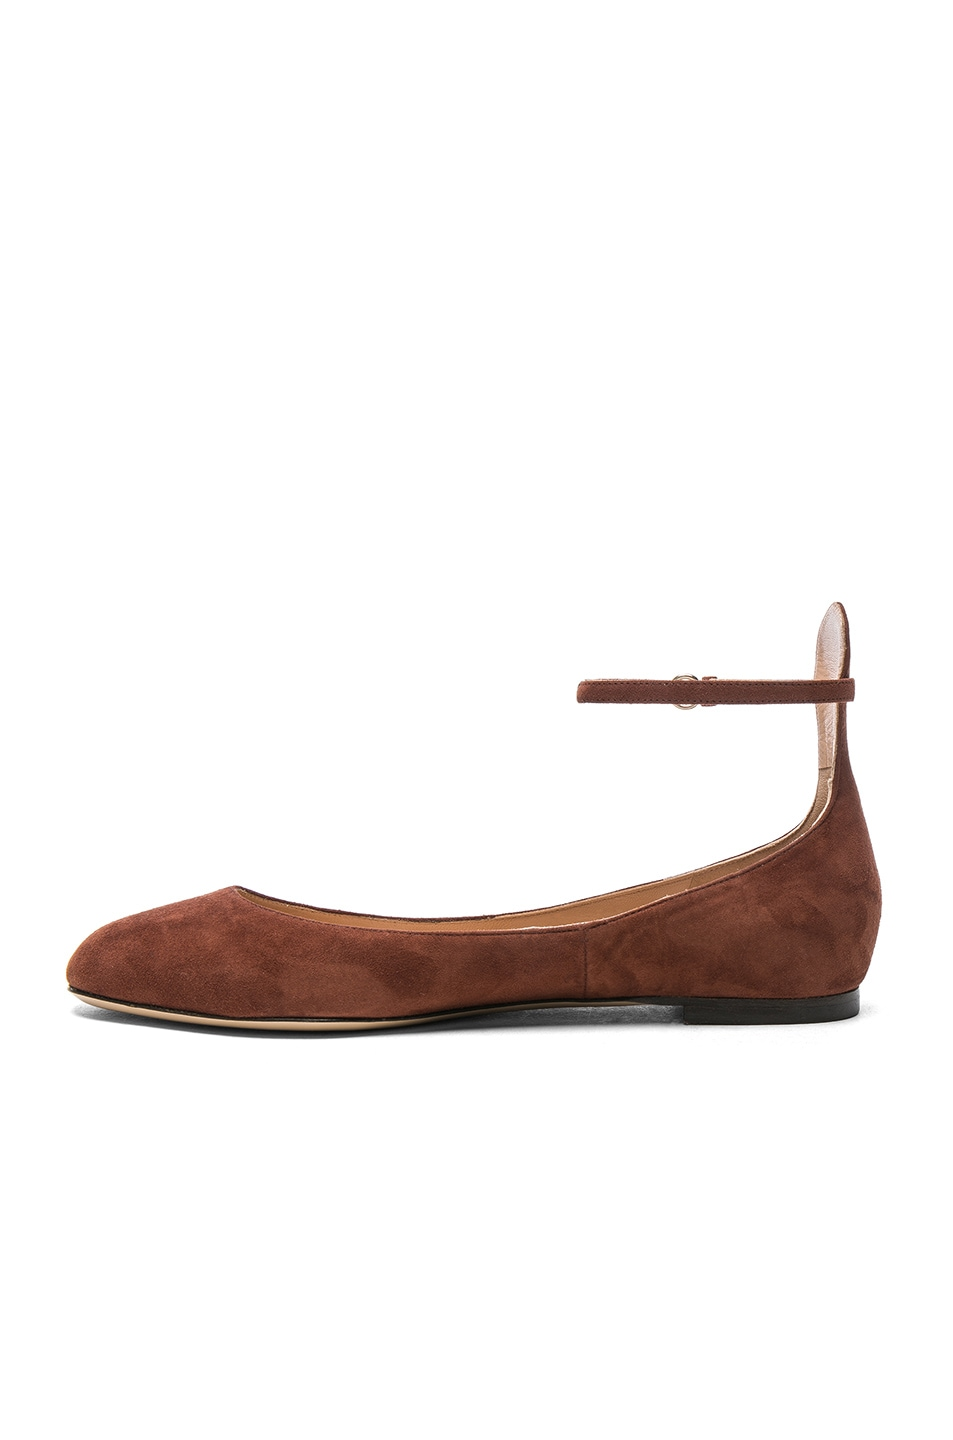 Image 5 of Valentino Suede Tan-Go Flats in Light Brown